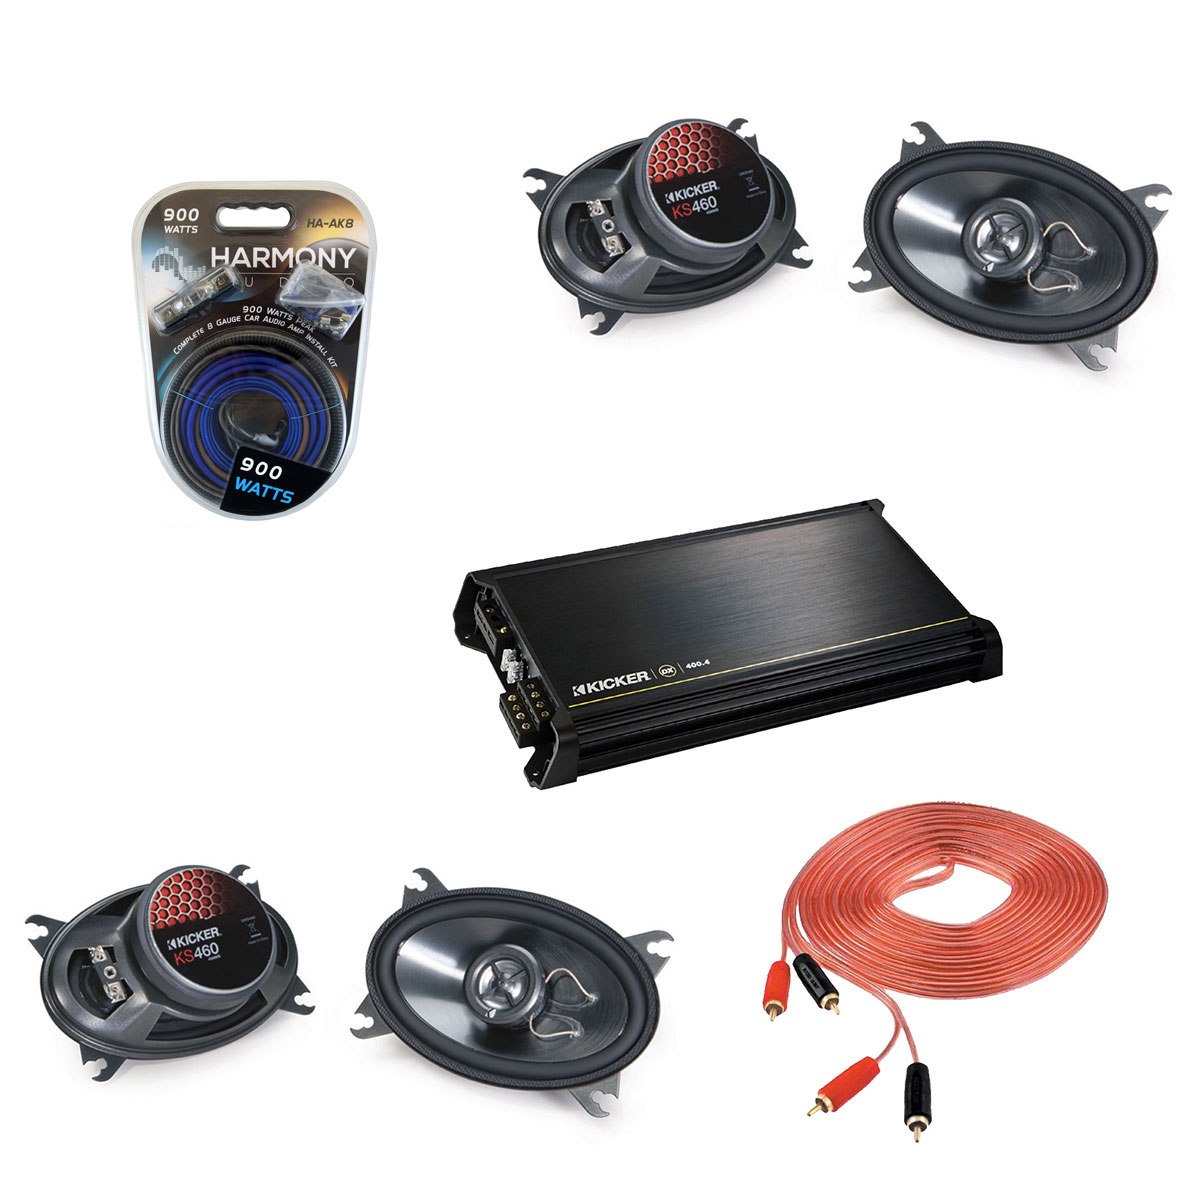 "Kicker Car Audio (2) KS460 Full Range 4X6"" Speaker Pairs with DX400.4 Amplifier & 8GA Amp Kit"